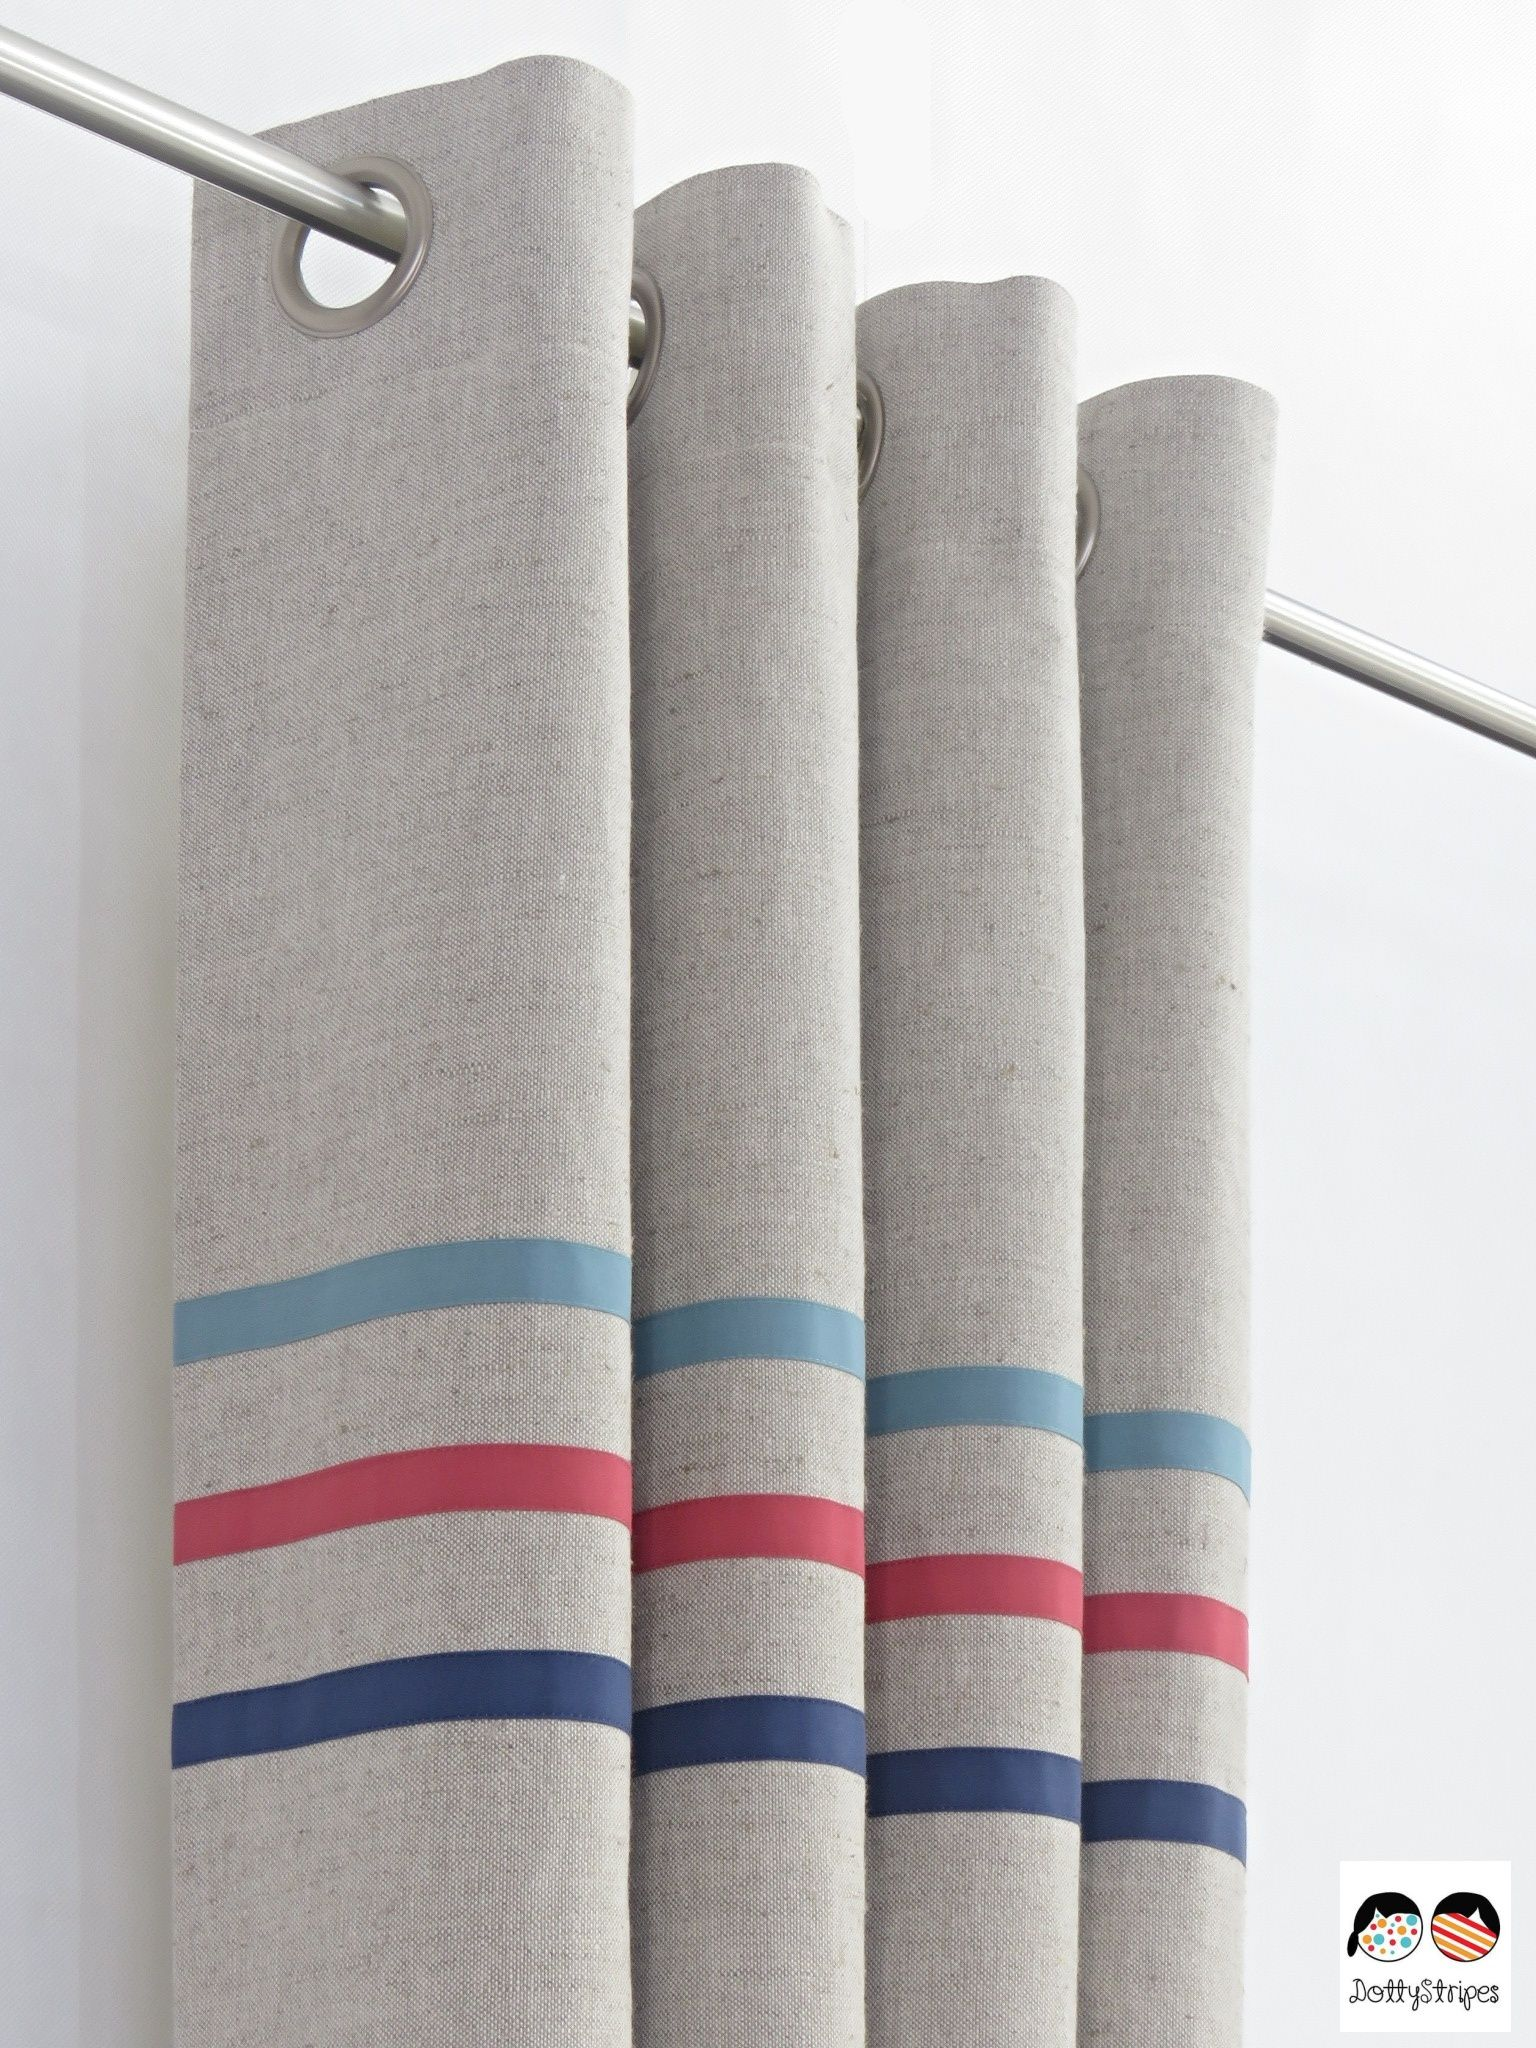 Boys Nursery Curtains Classic Boys Curtains For Nursery And Beyond Made From Linen